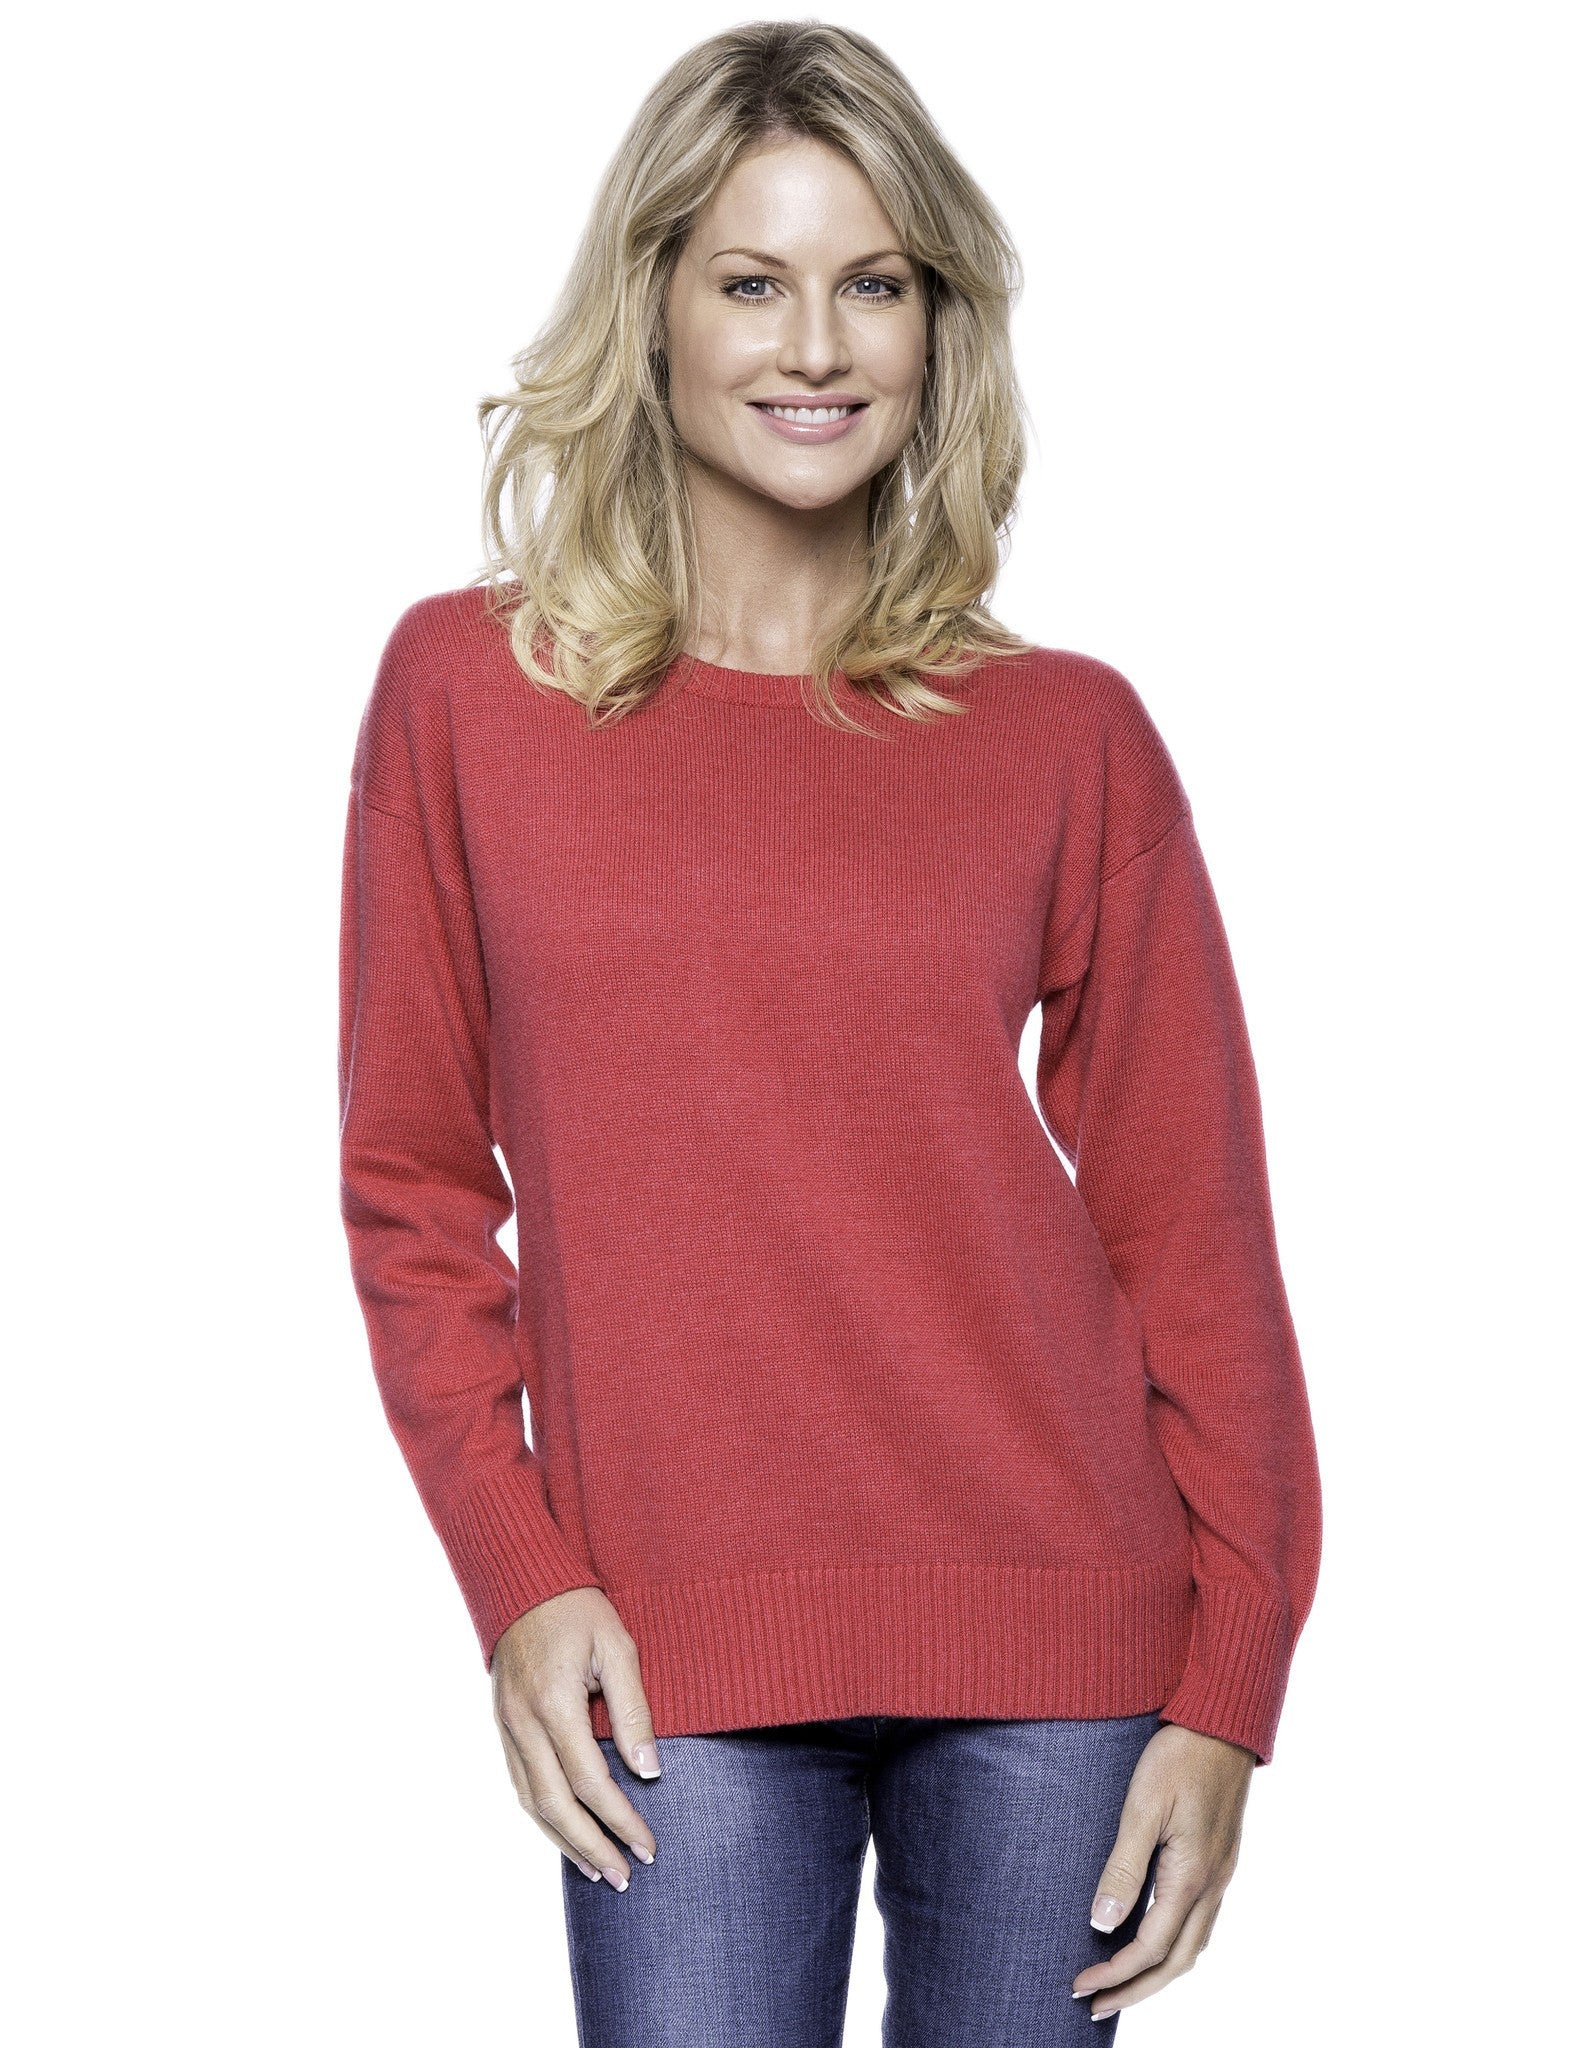 Cashmere Blend Crew Neck Sweater with Drop Shoulder - Fuchsia